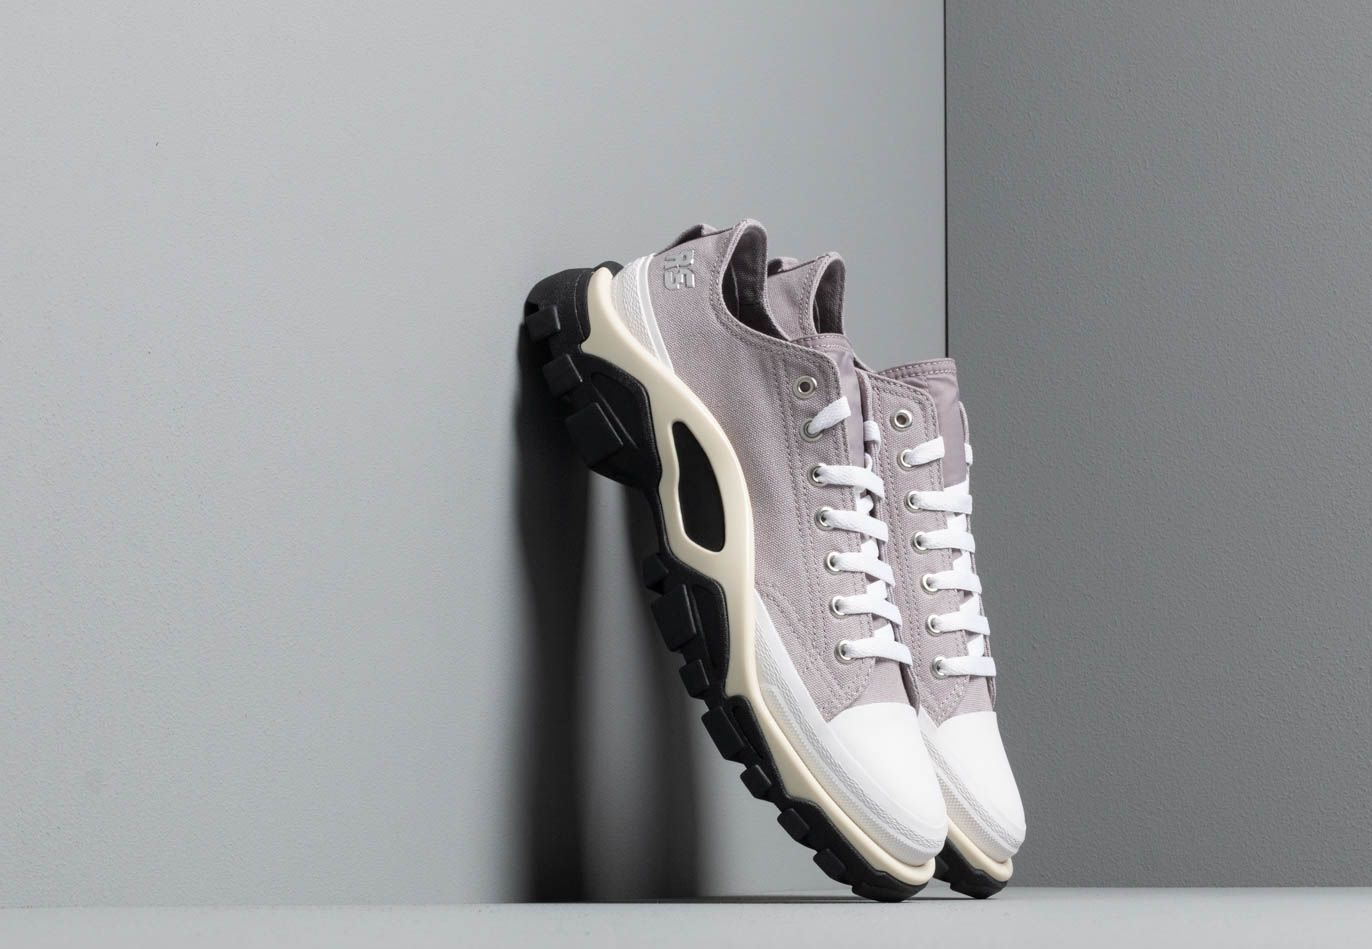 adidas x Raf Simons Detroit Runner Light Granite Silver Metallic Core White